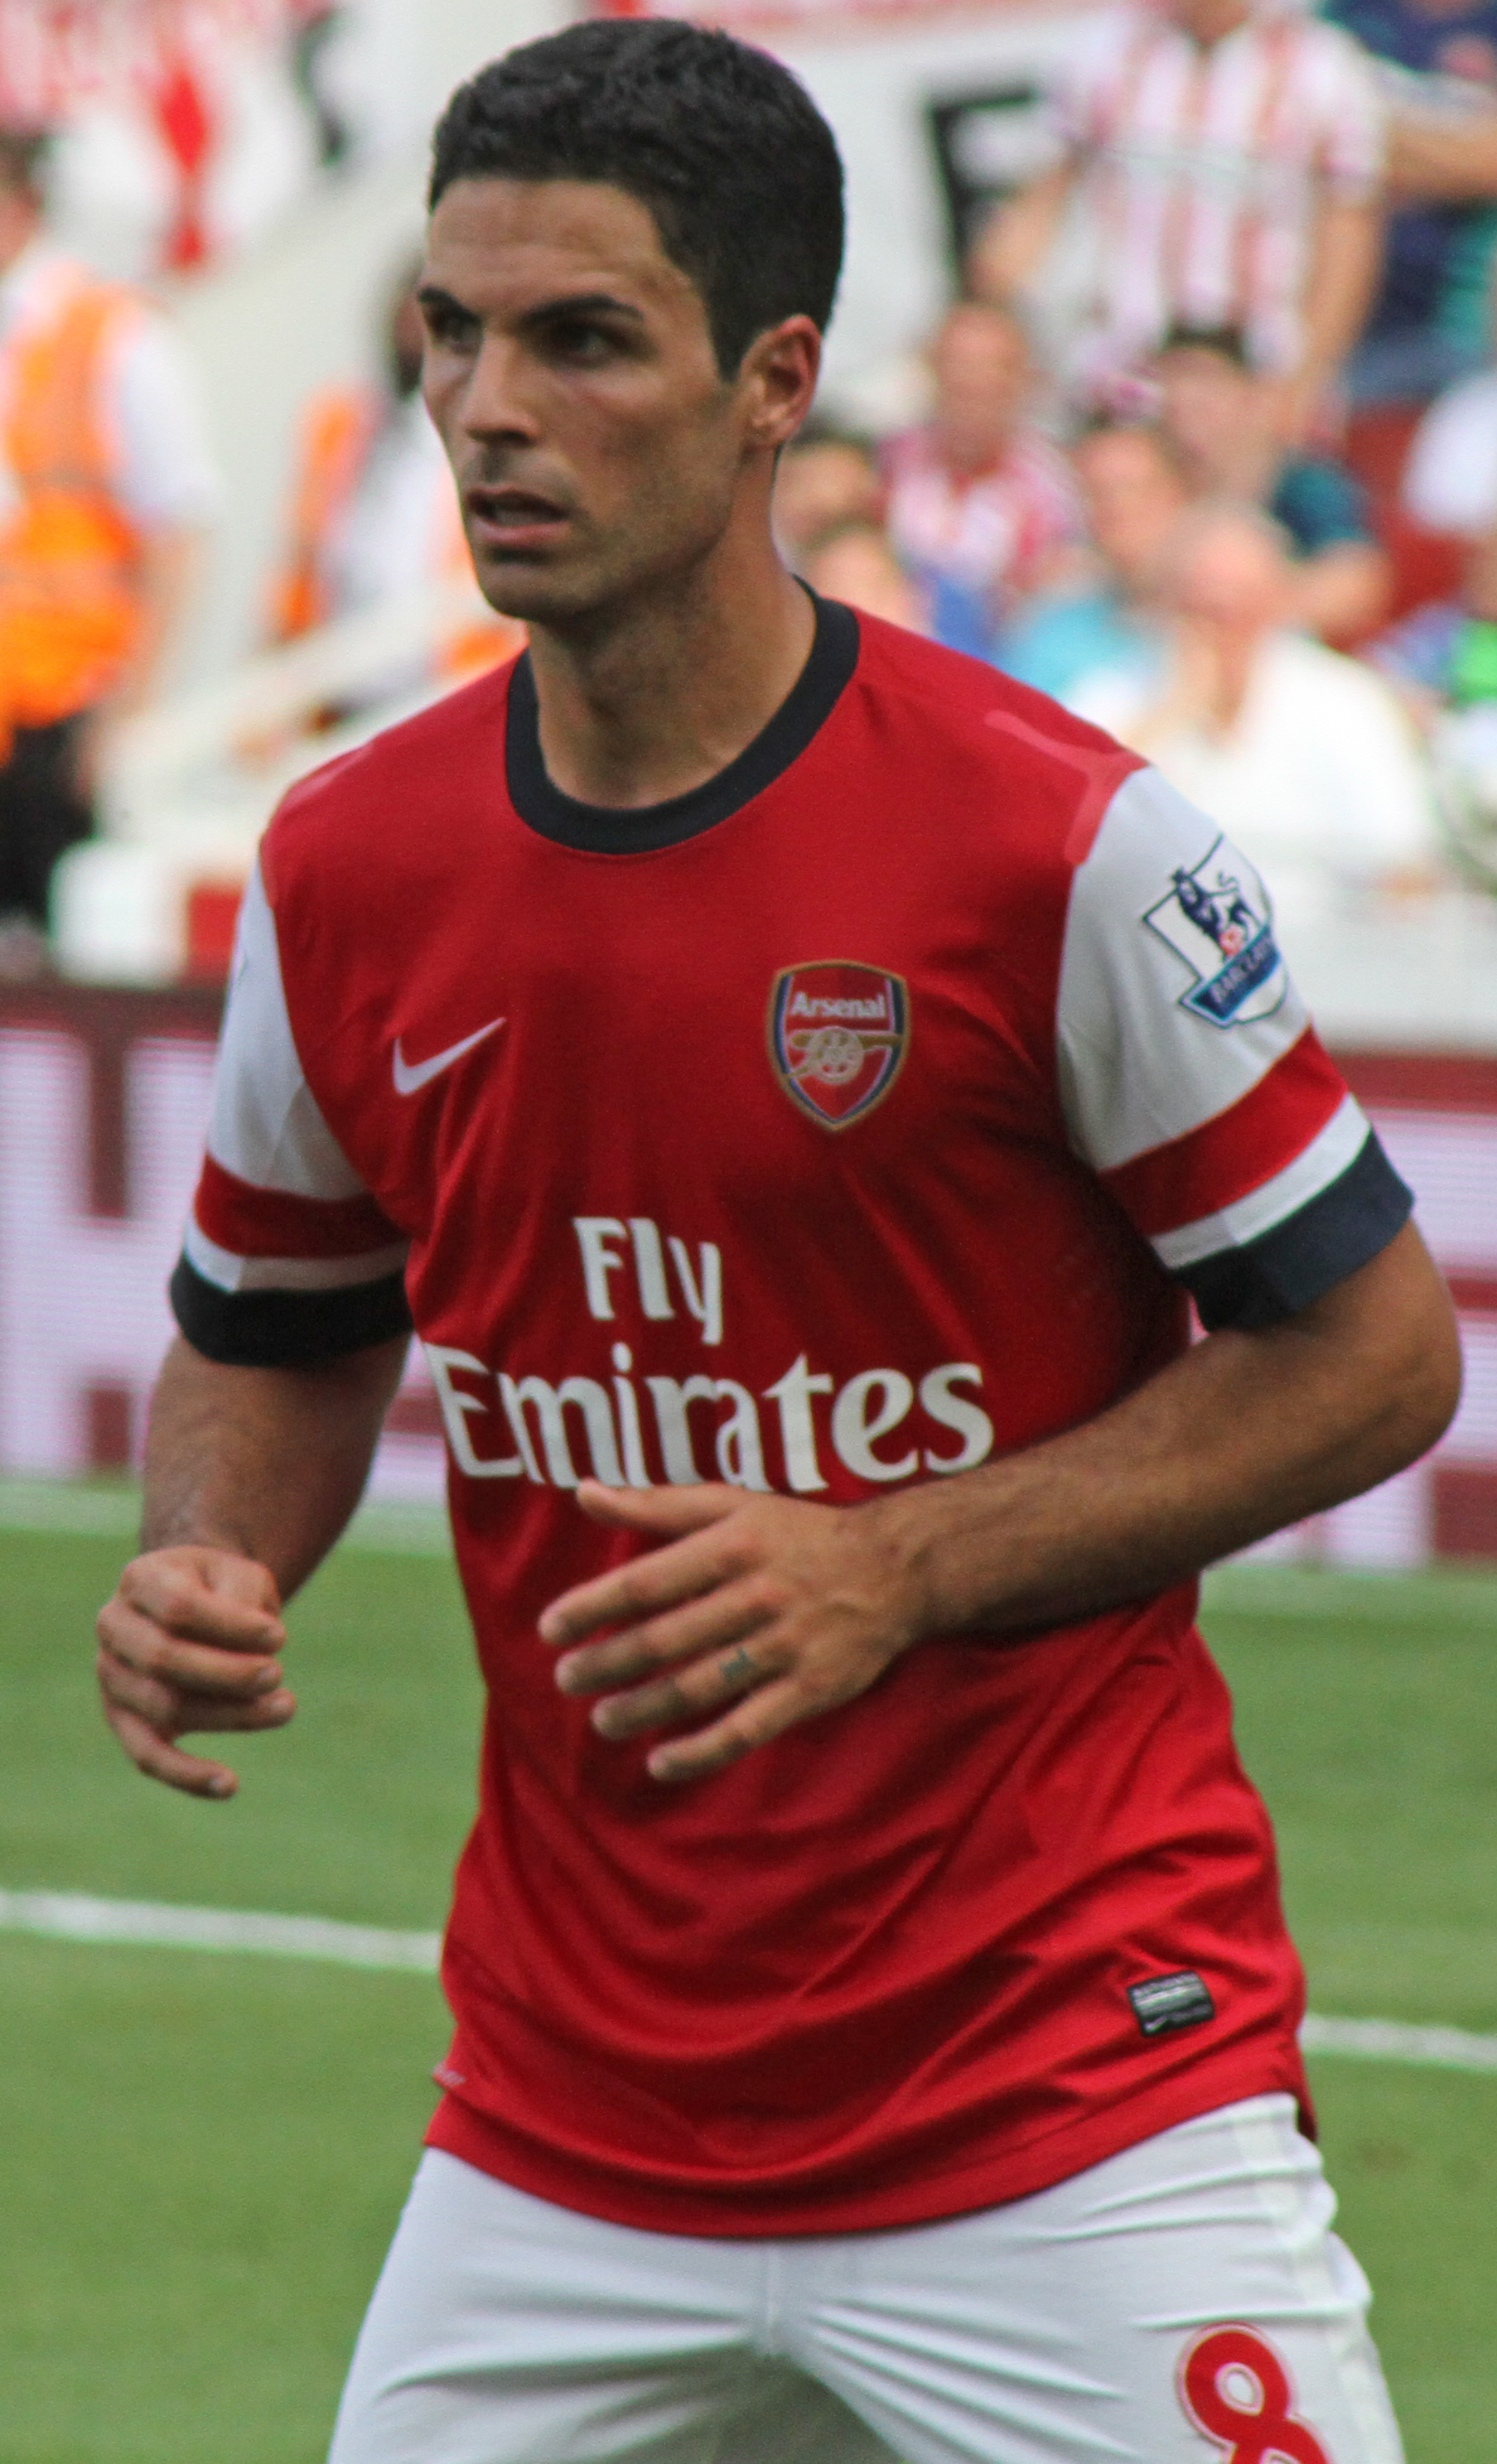 The 36-year old son of father (?) and mother(?) Mikel Arteta in 2018 photo. Mikel Arteta earned a  million dollar salary - leaving the net worth at 13.8 million in 2018